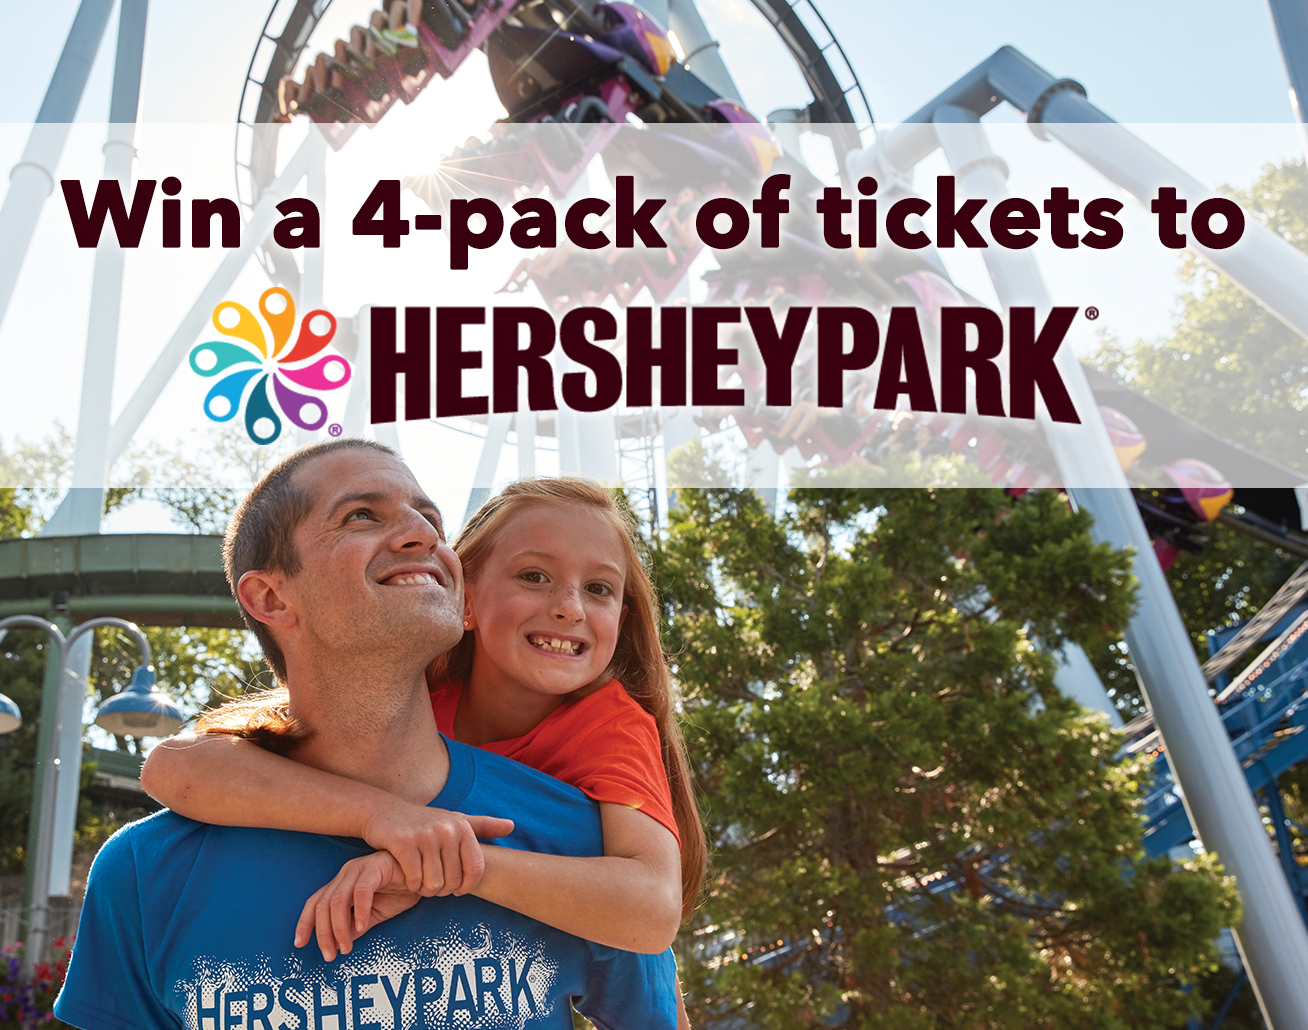 Win a 4-Pack of tickets to Hersheypark!